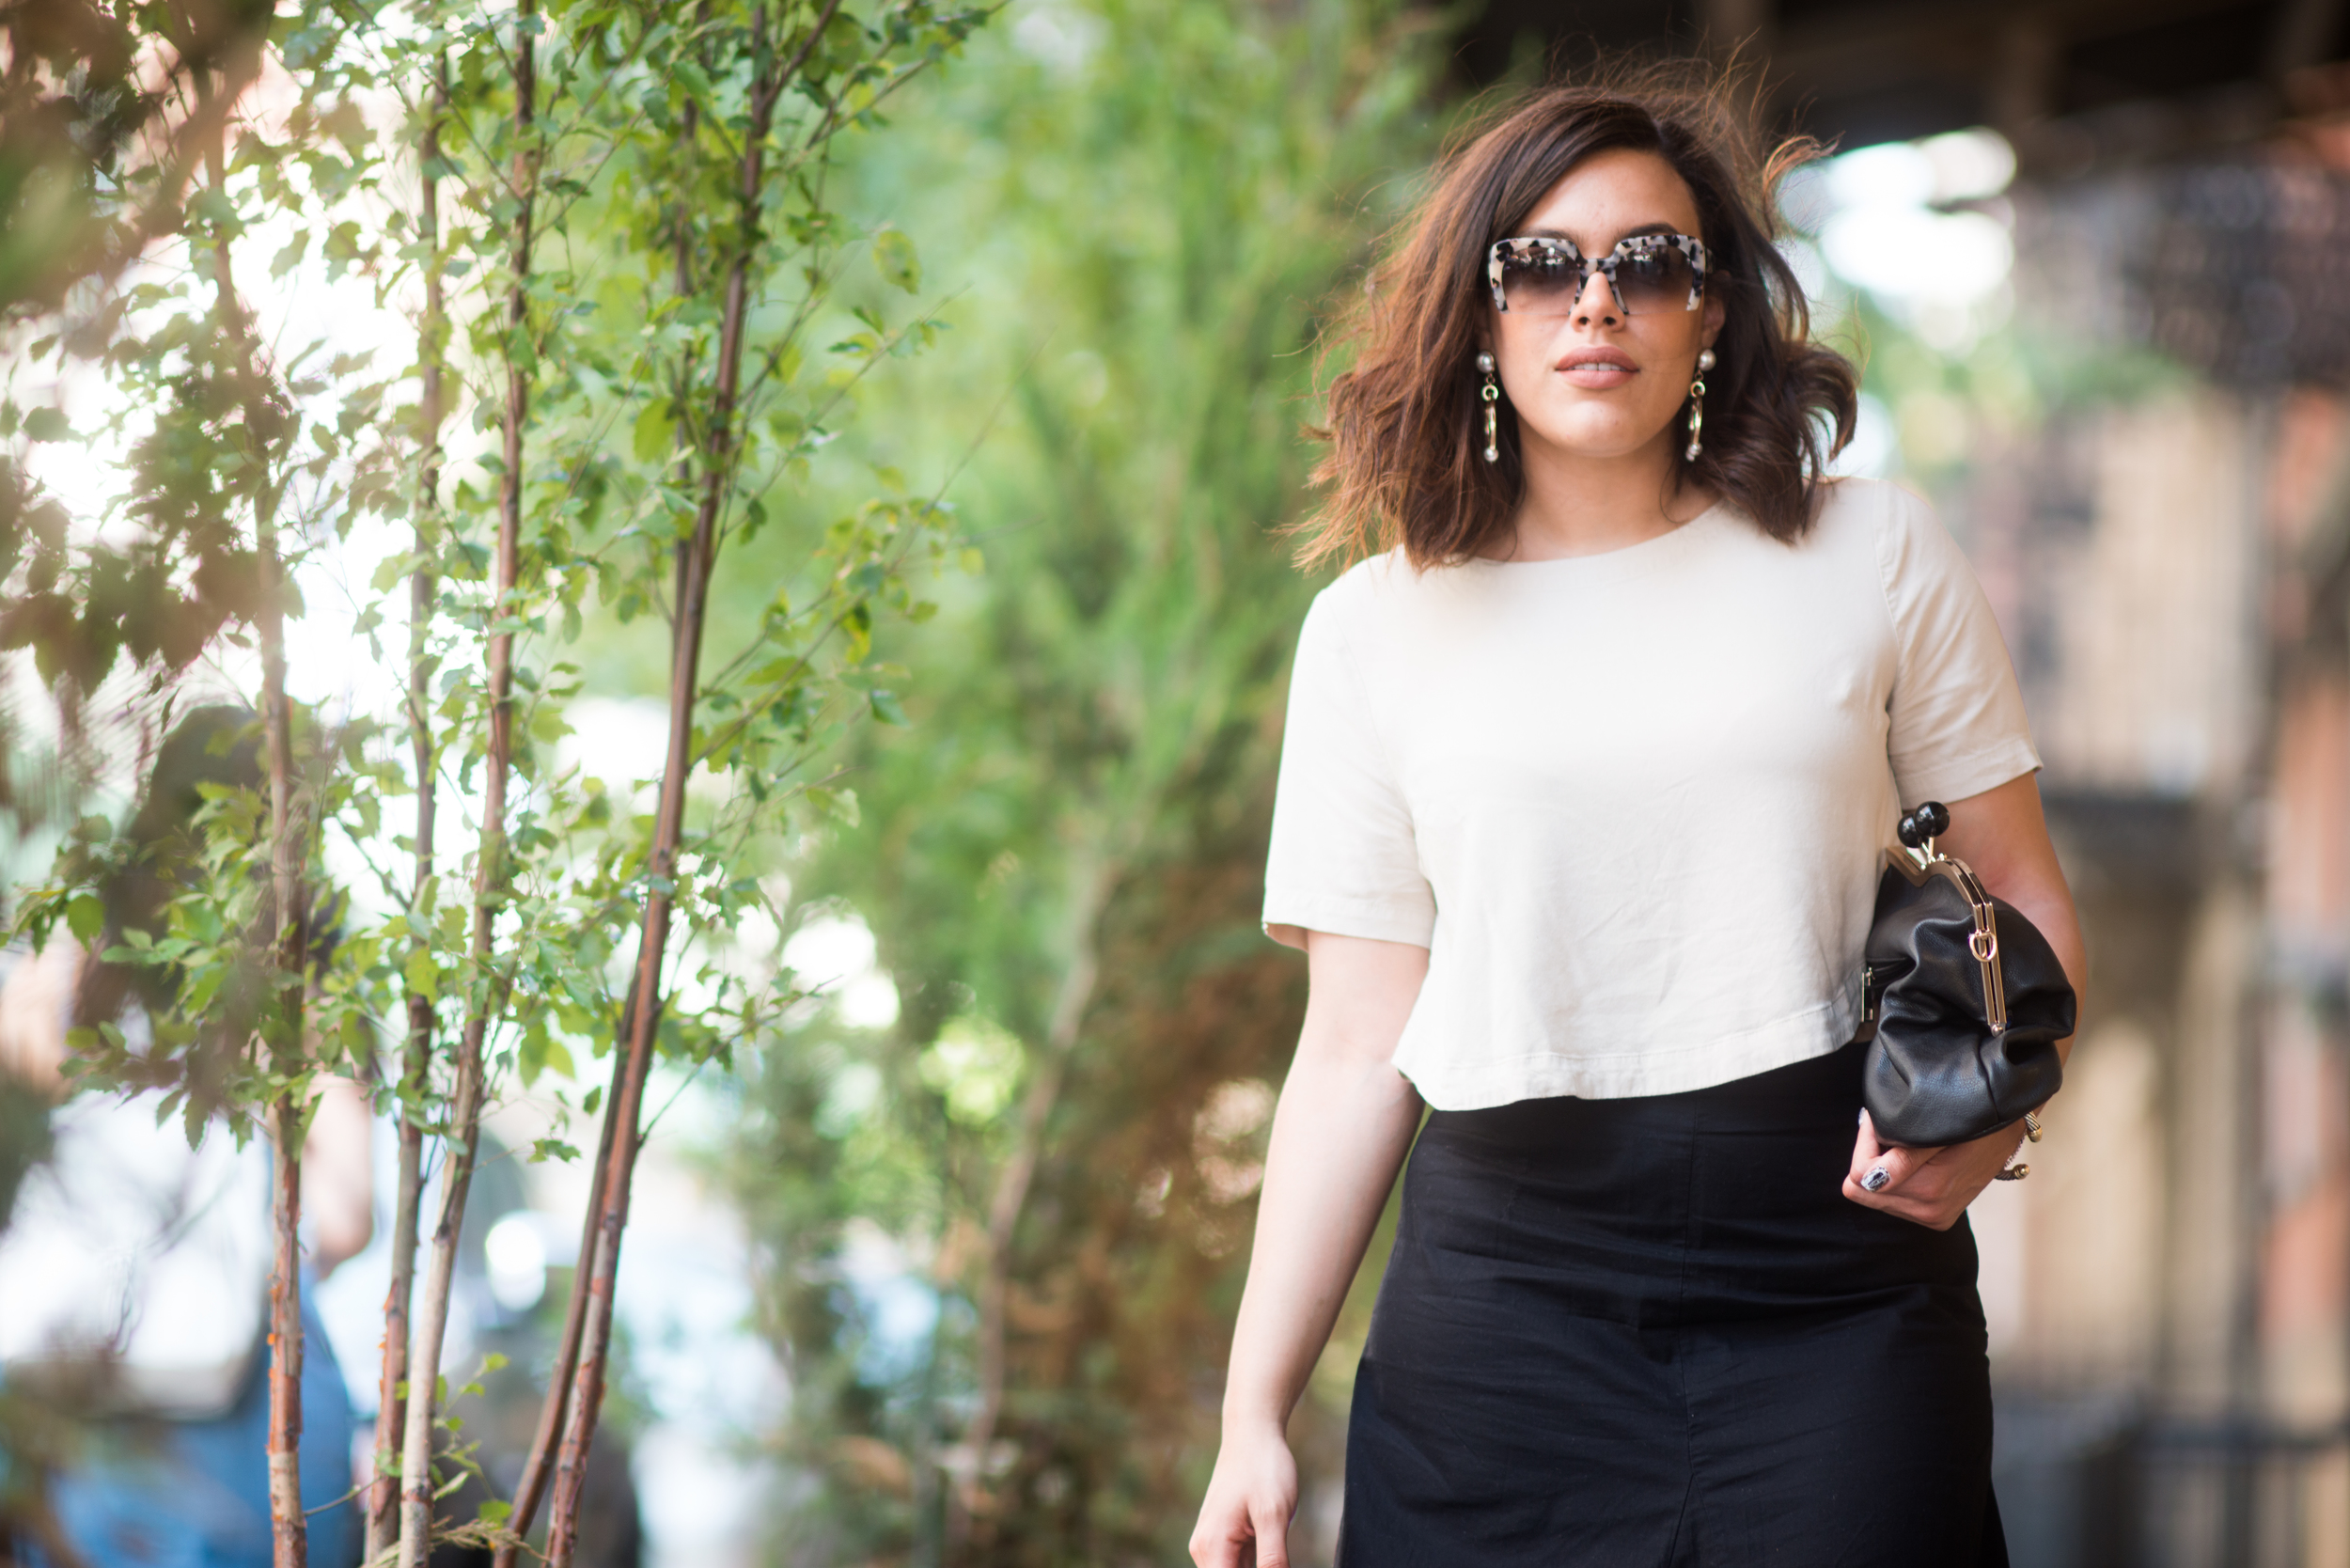 how-to-wear-midi-skirt-crop-top-summer-uniform-what-to-wear-when-it's-really-hot-outside-latina-new-york-city-fashion-blogger-style-operator-summer-fashion.jpg